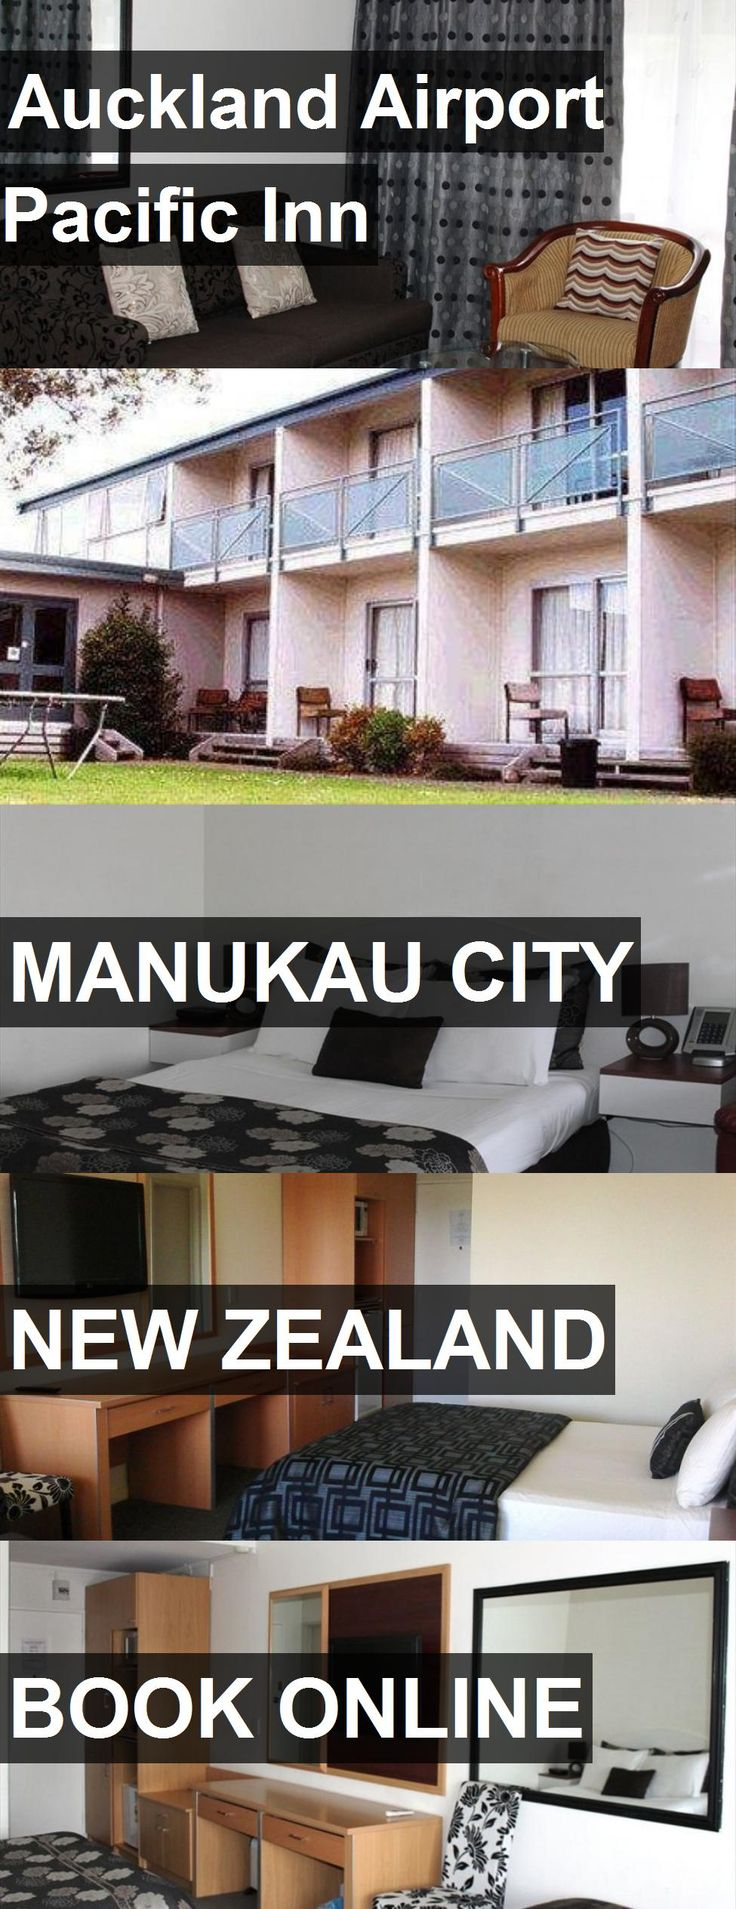 Hotel Auckland Airport Pacific Inn in Manukau City, New Zealand. For more information, photos, reviews and best prices please follow the link. #NewZealand #ManukauCity #AucklandAirportPacificInn #hotel #travel #vacation